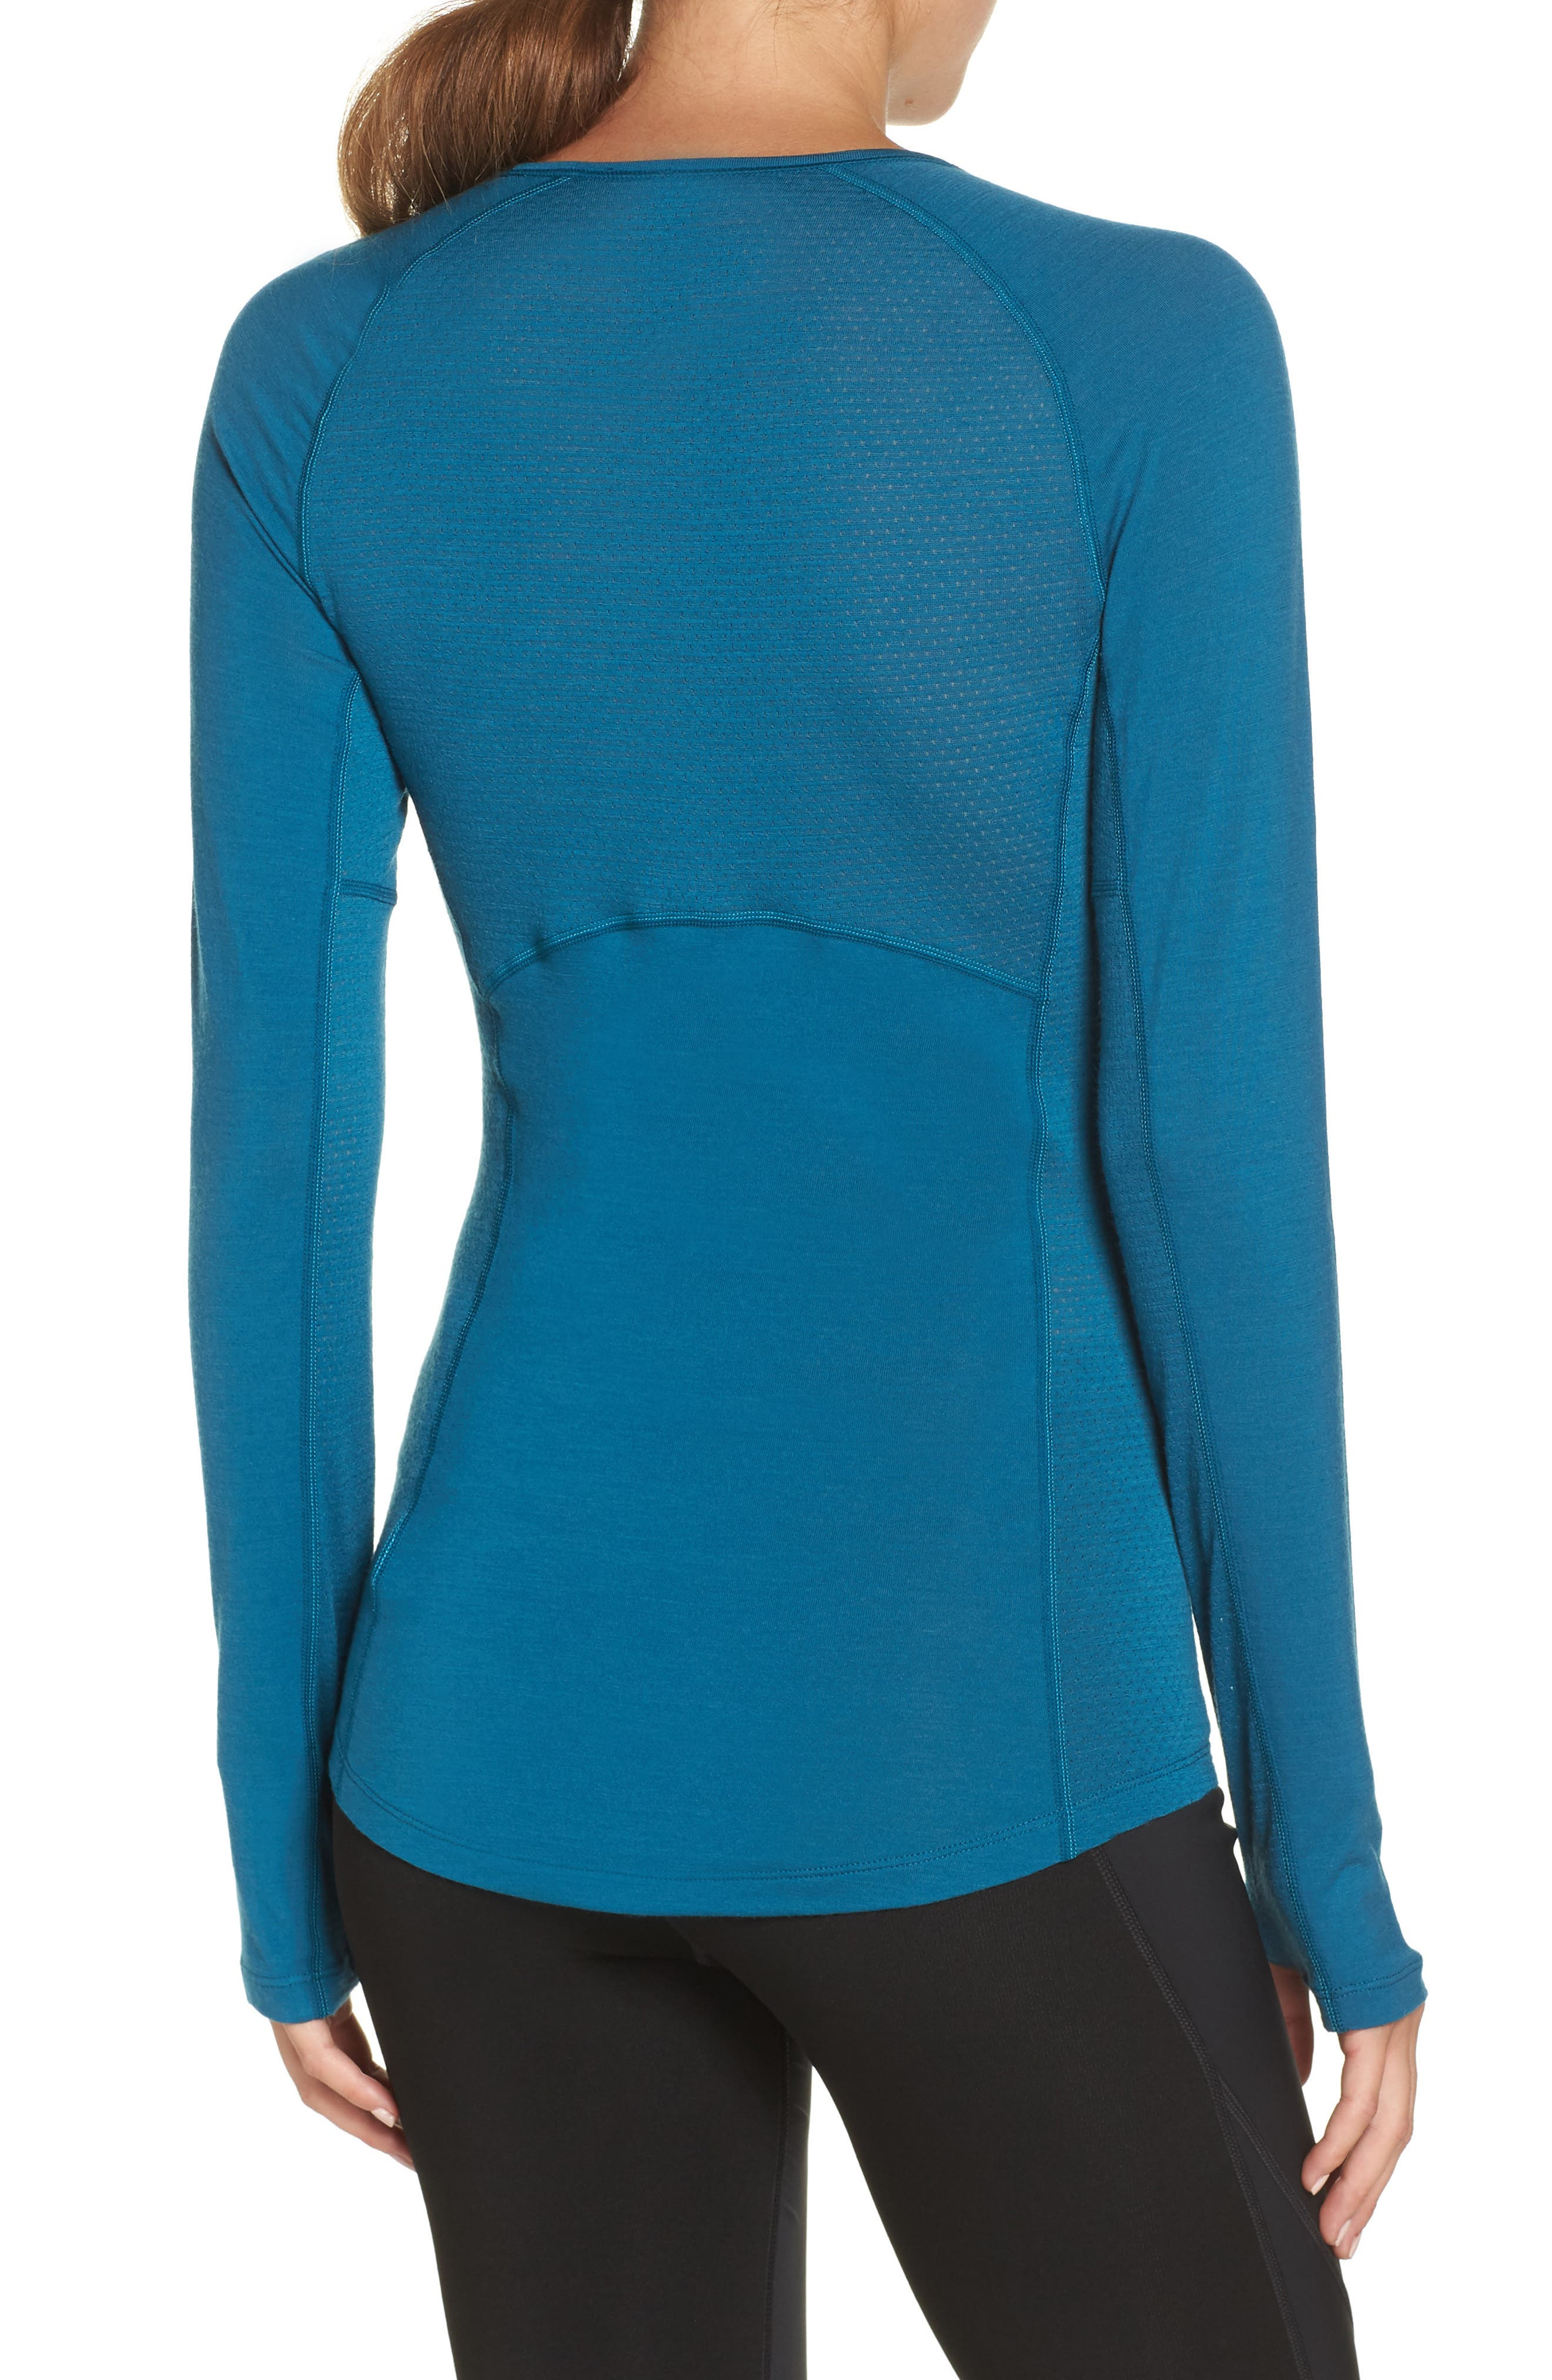 BodyfitZONE<sup>™</sup> 150 Zone Merino Wool Blend Base Layer Tee,                             Alternate thumbnail 2, color,                             KING FISCHER/ ARCTIC TEAL